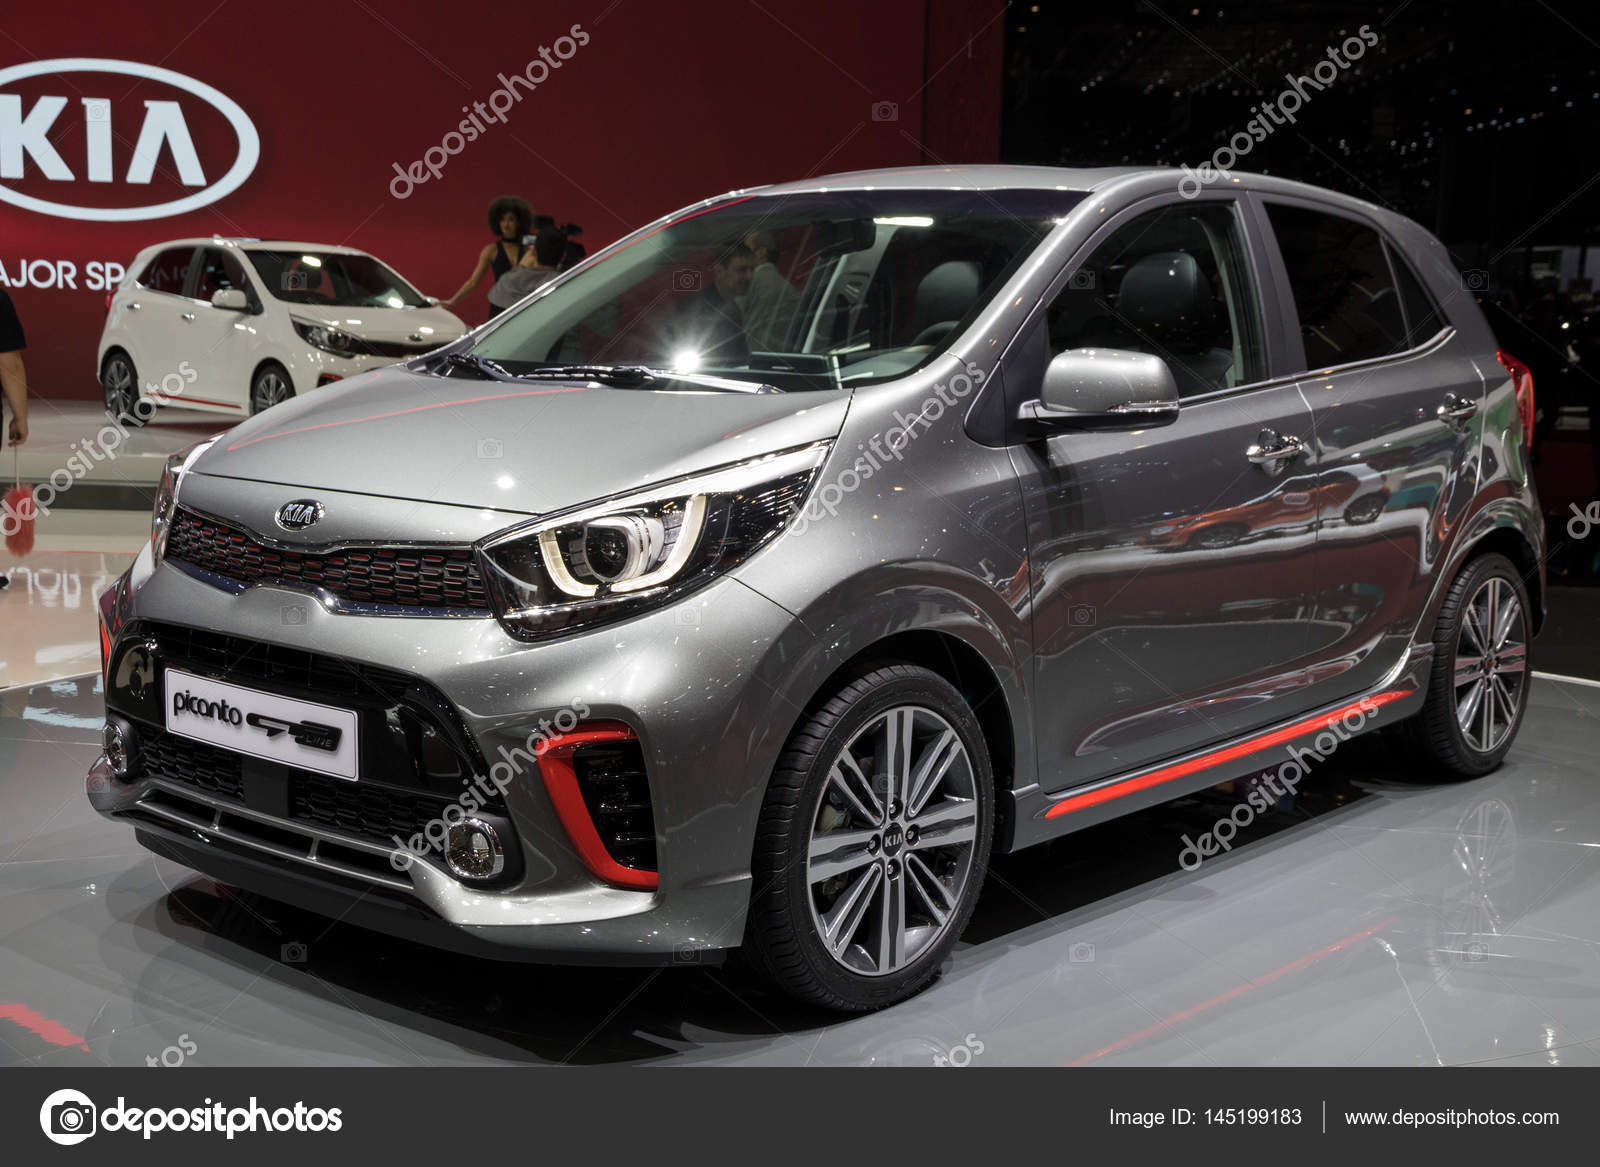 kia picanto gt line auto redactionele stockfoto foto vdw 145199183. Black Bedroom Furniture Sets. Home Design Ideas